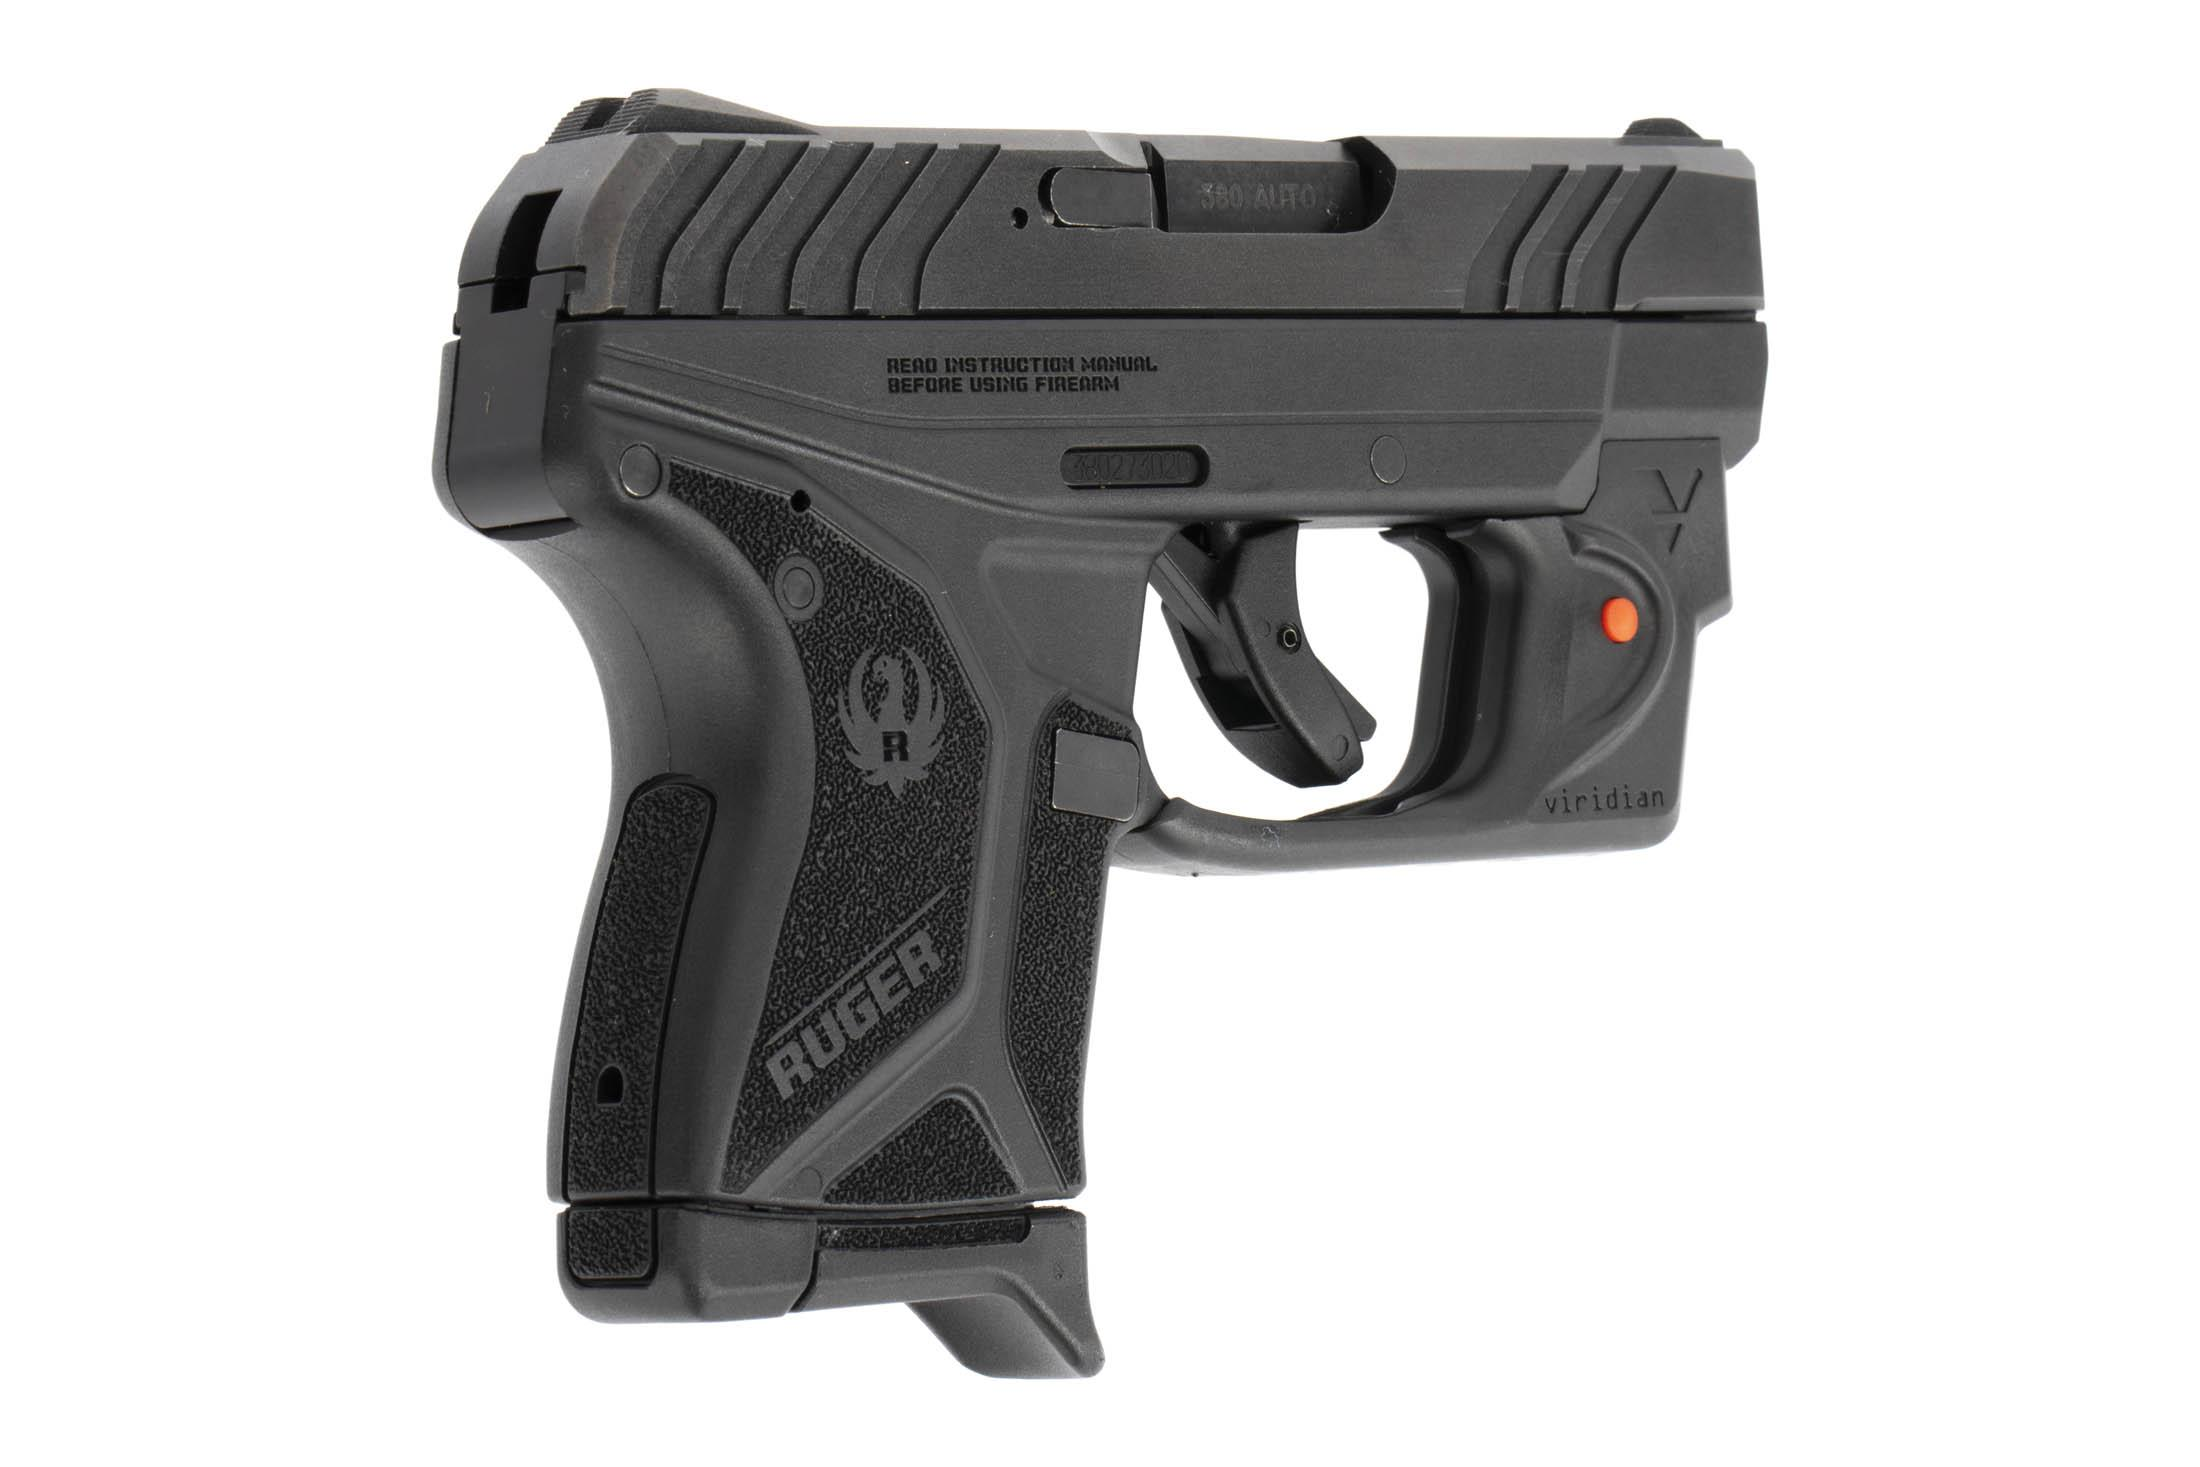 Ruger Lcp Semi Auto Pistol With Laser Sight Carpet